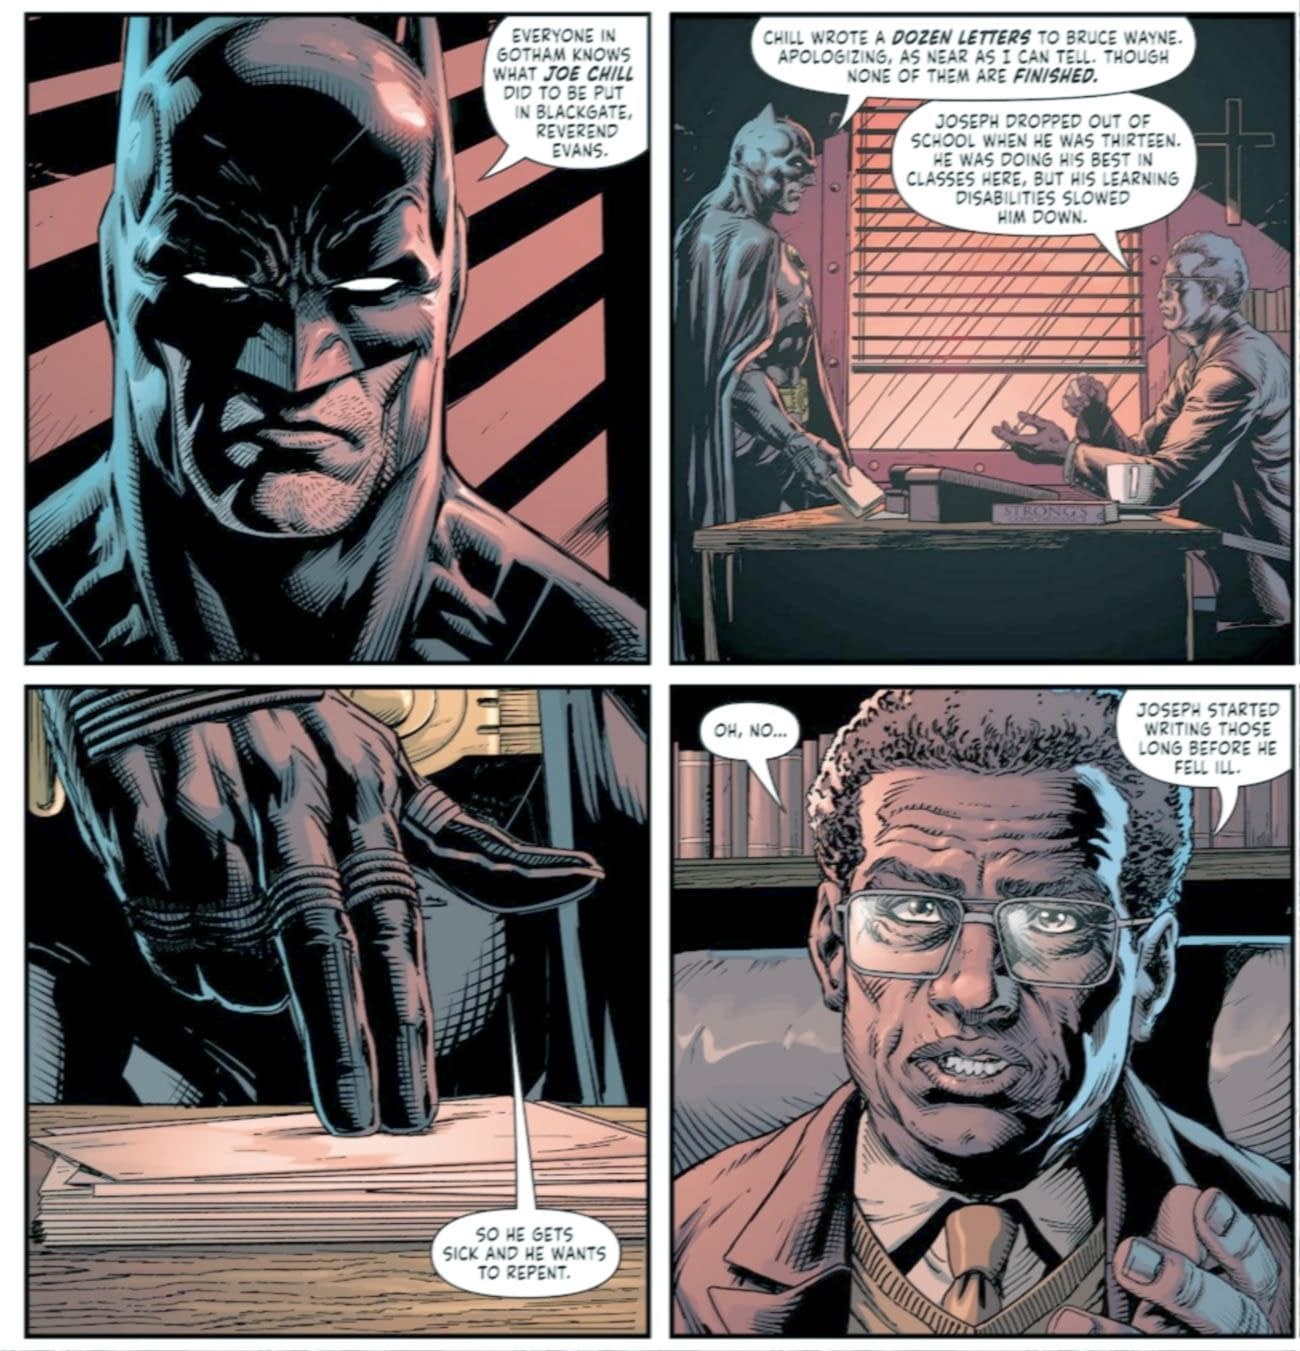 Does Three Jokers Give Batman Closure Over The Death Of His Parents The man who murdered thomas and martha wayne might just know who the batman is.or did he? three jokers give batman closure over